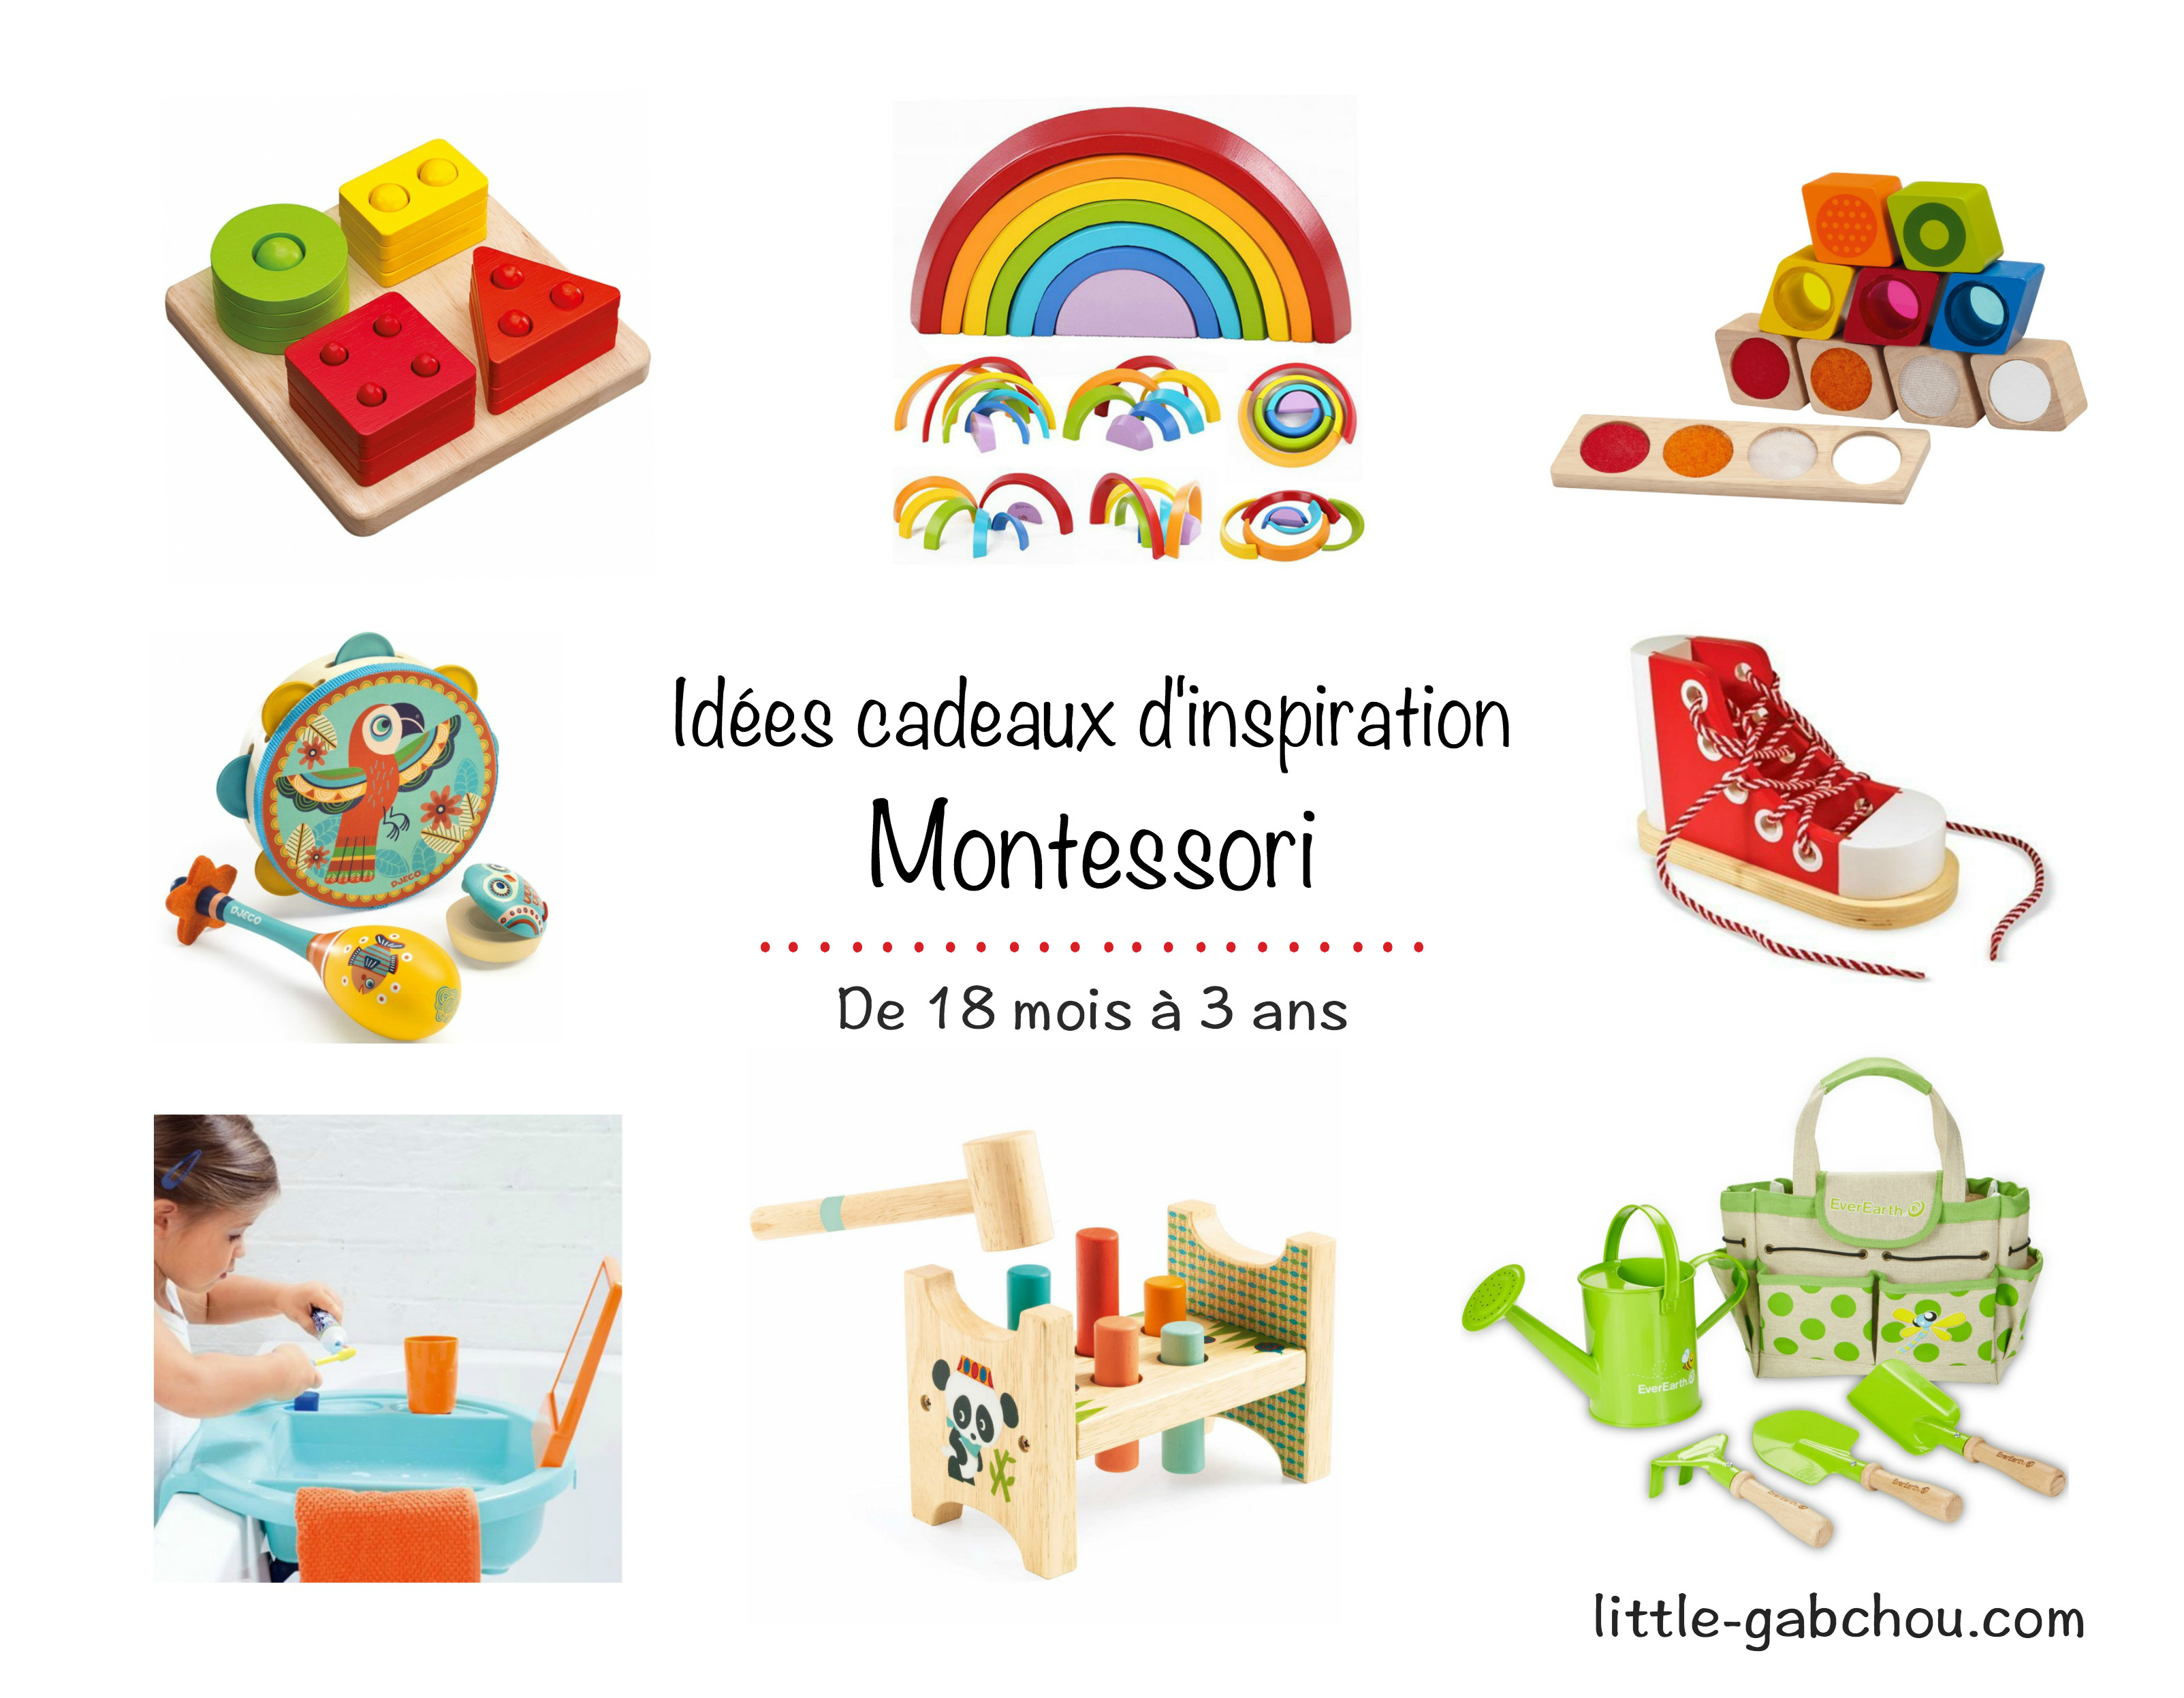 id es cadeaux montessori pour enfants de 18 mois 3 ans. Black Bedroom Furniture Sets. Home Design Ideas